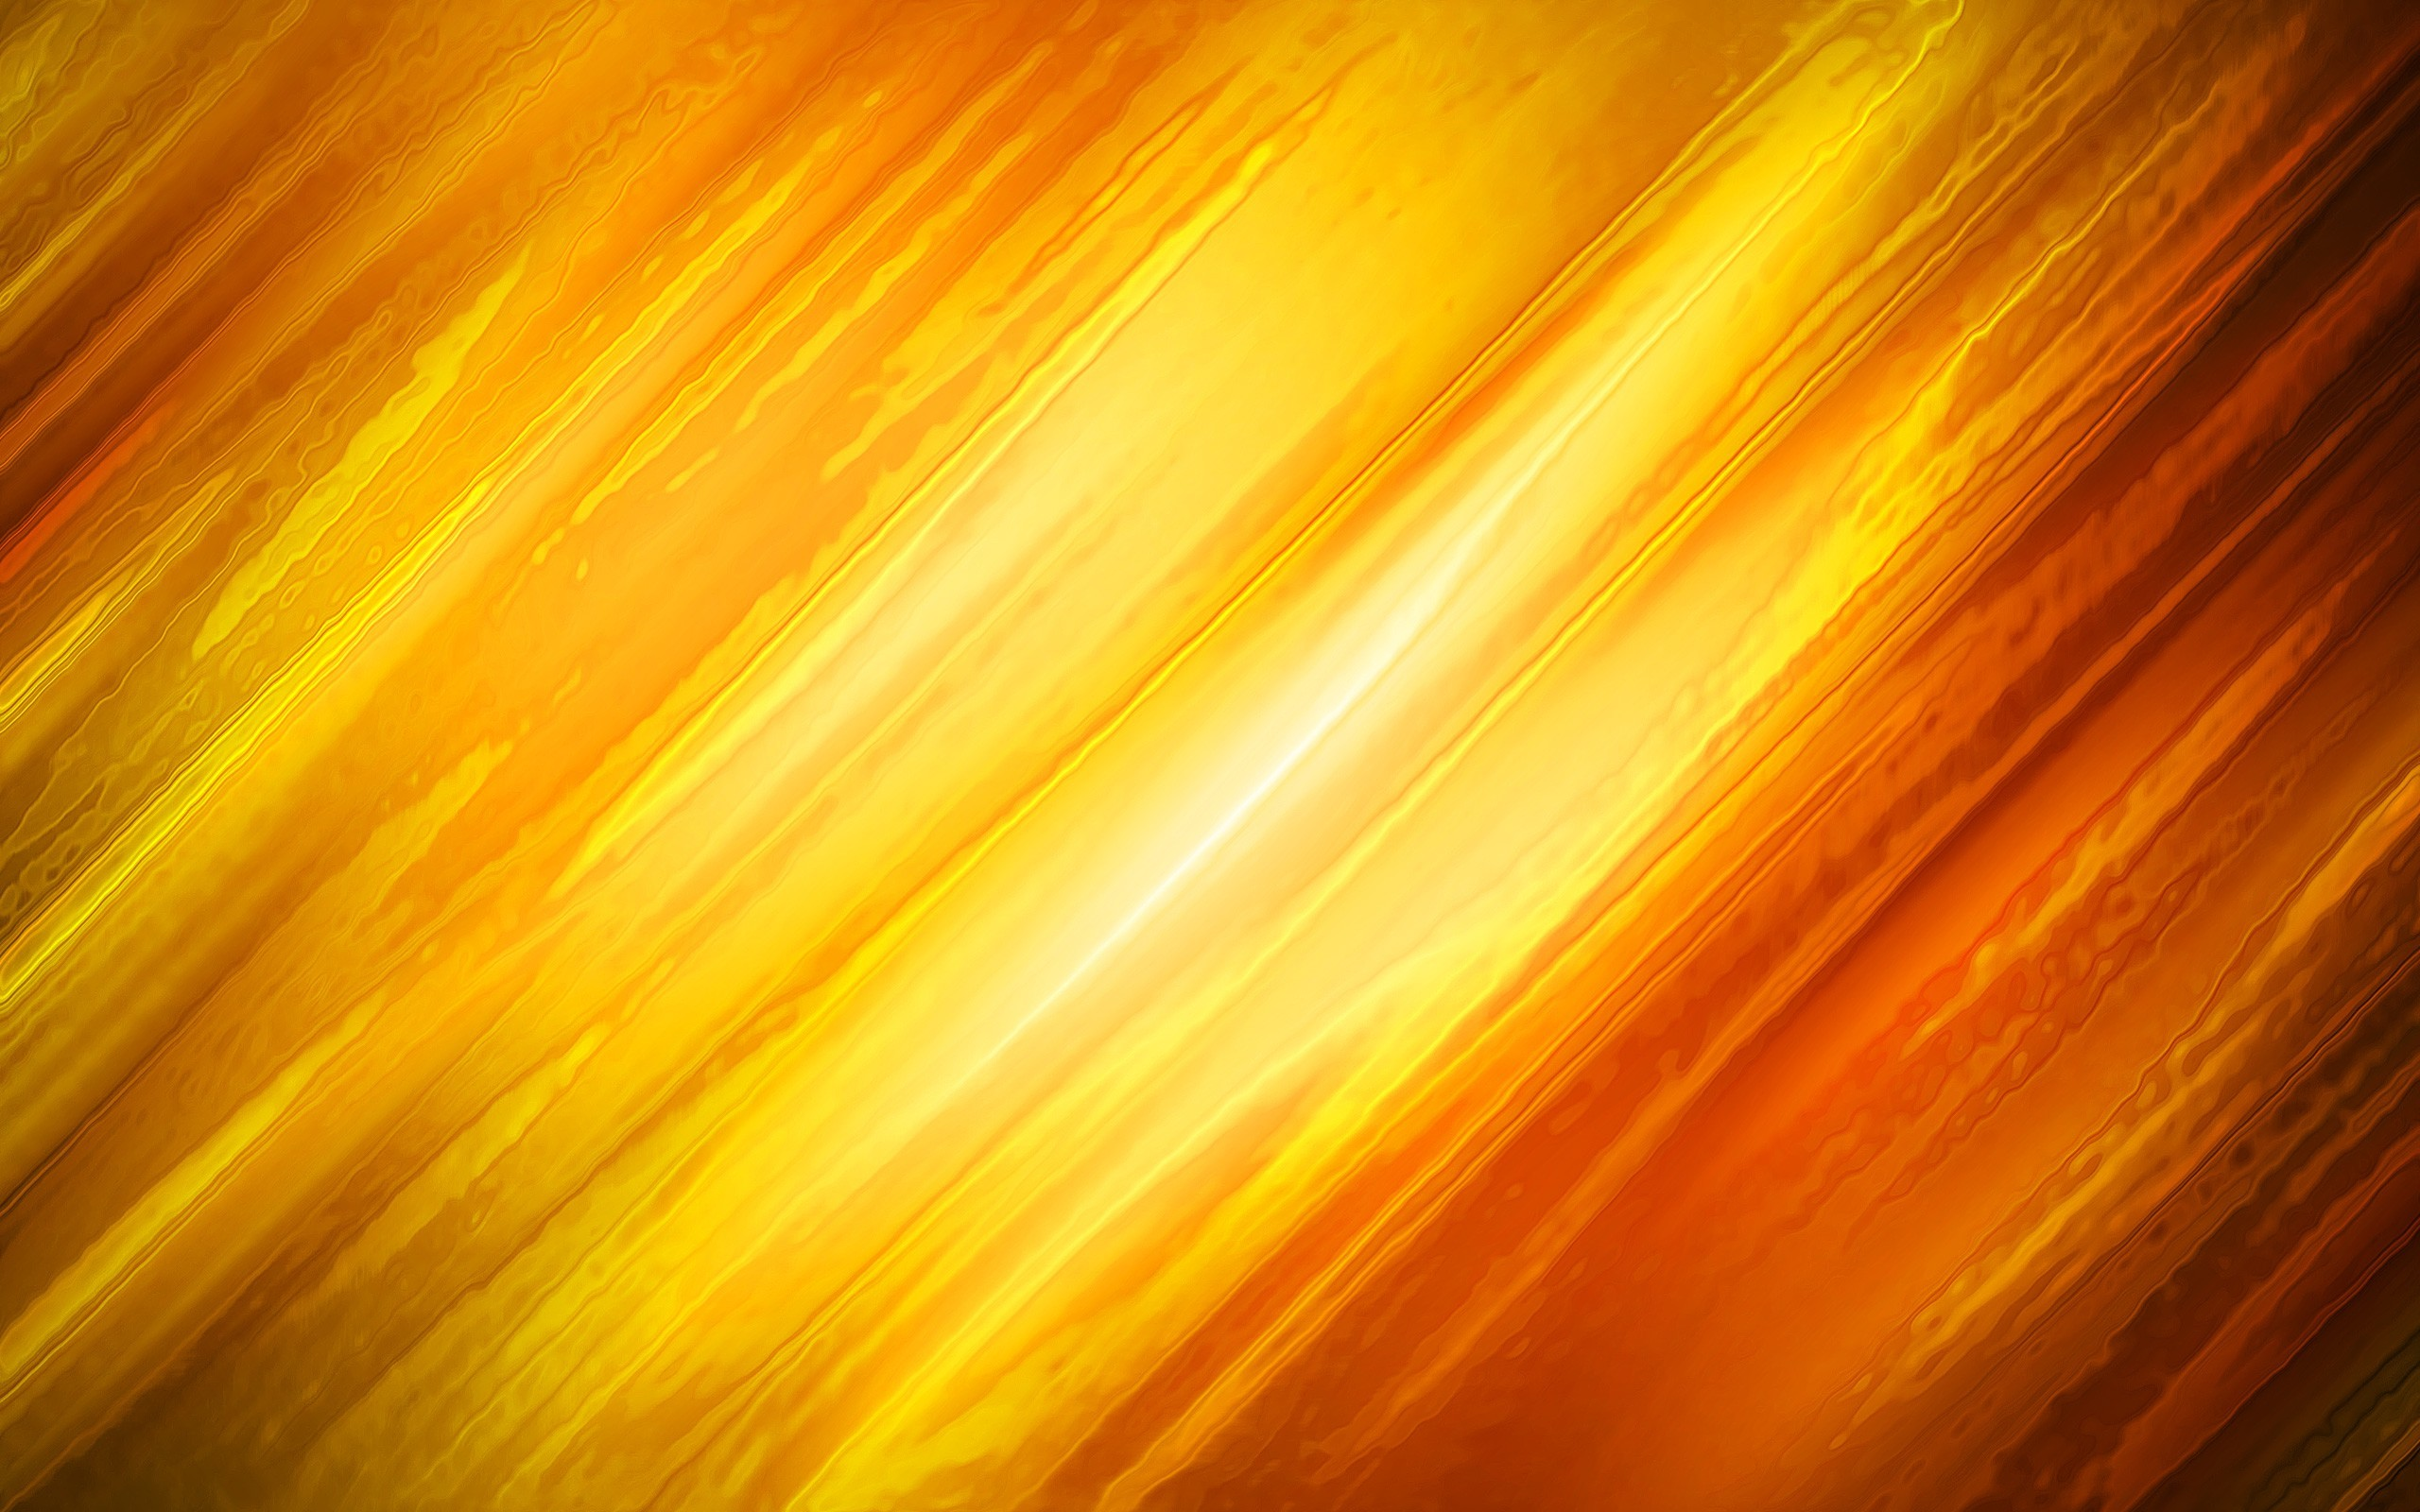 Abstract Orange Wallpaper Background 999